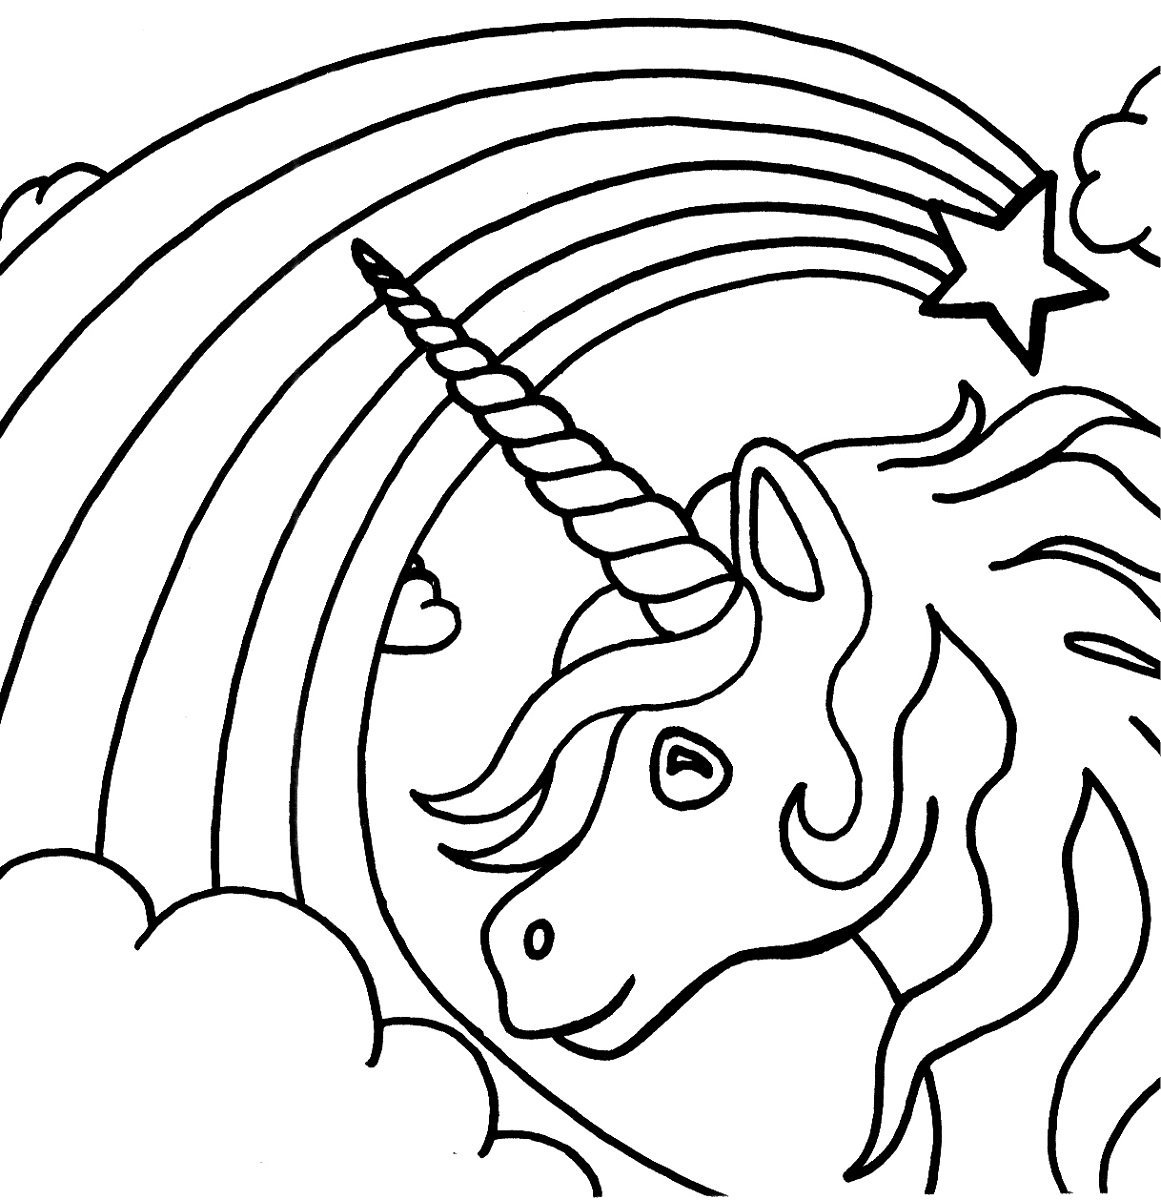 coloring pages of unicorns free printable unicorn coloring pages for kids unicorns pages of coloring